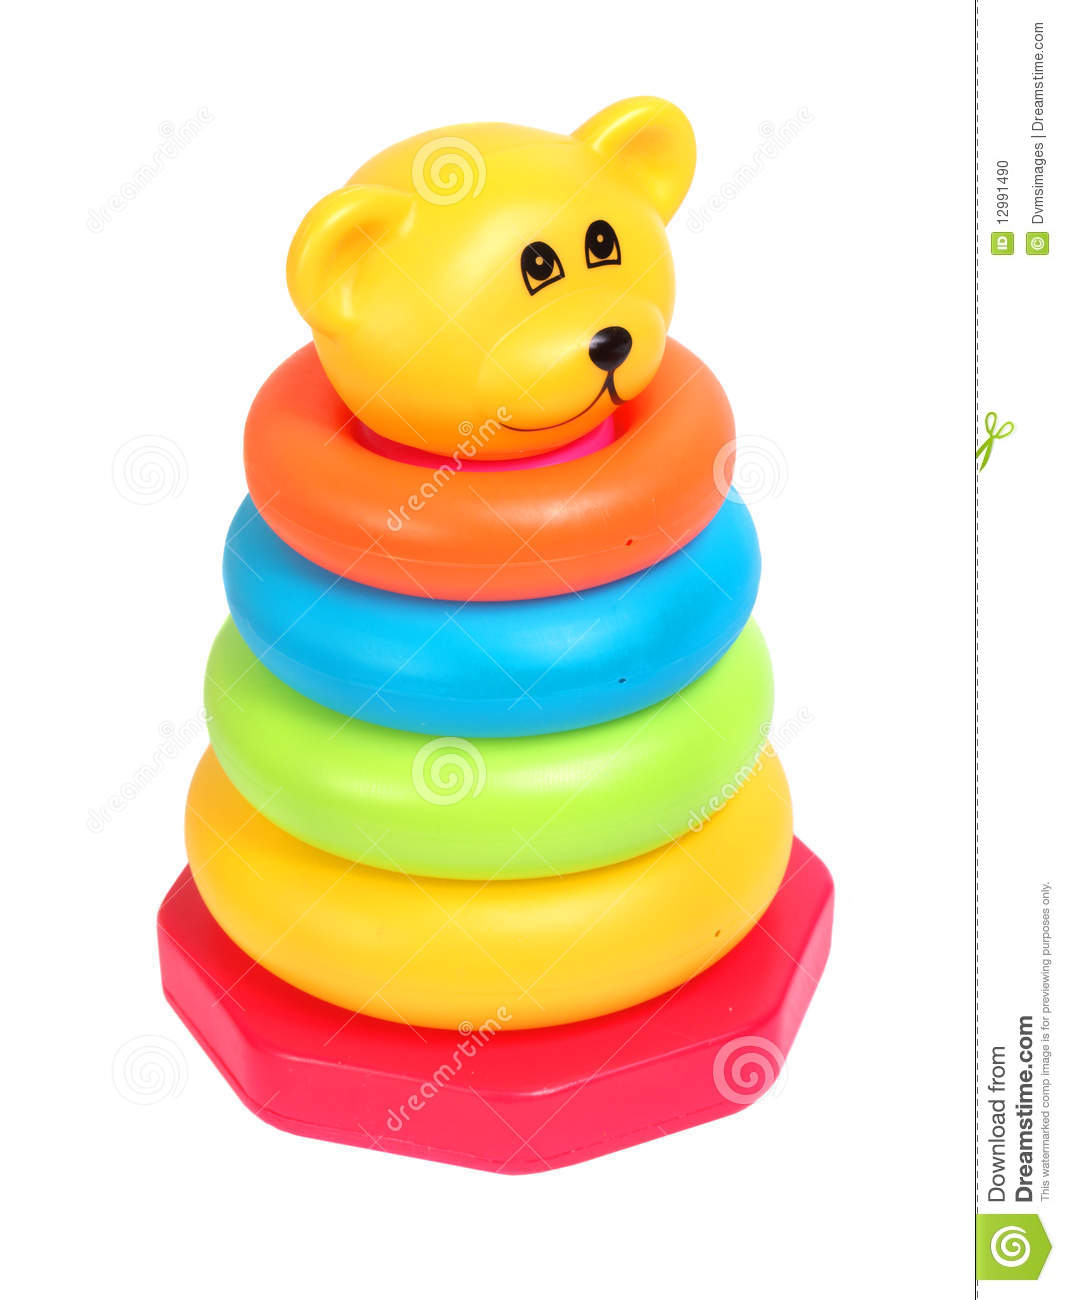 Toddler Toys Photography : Baby toy stock photo image of colorful rings hoops